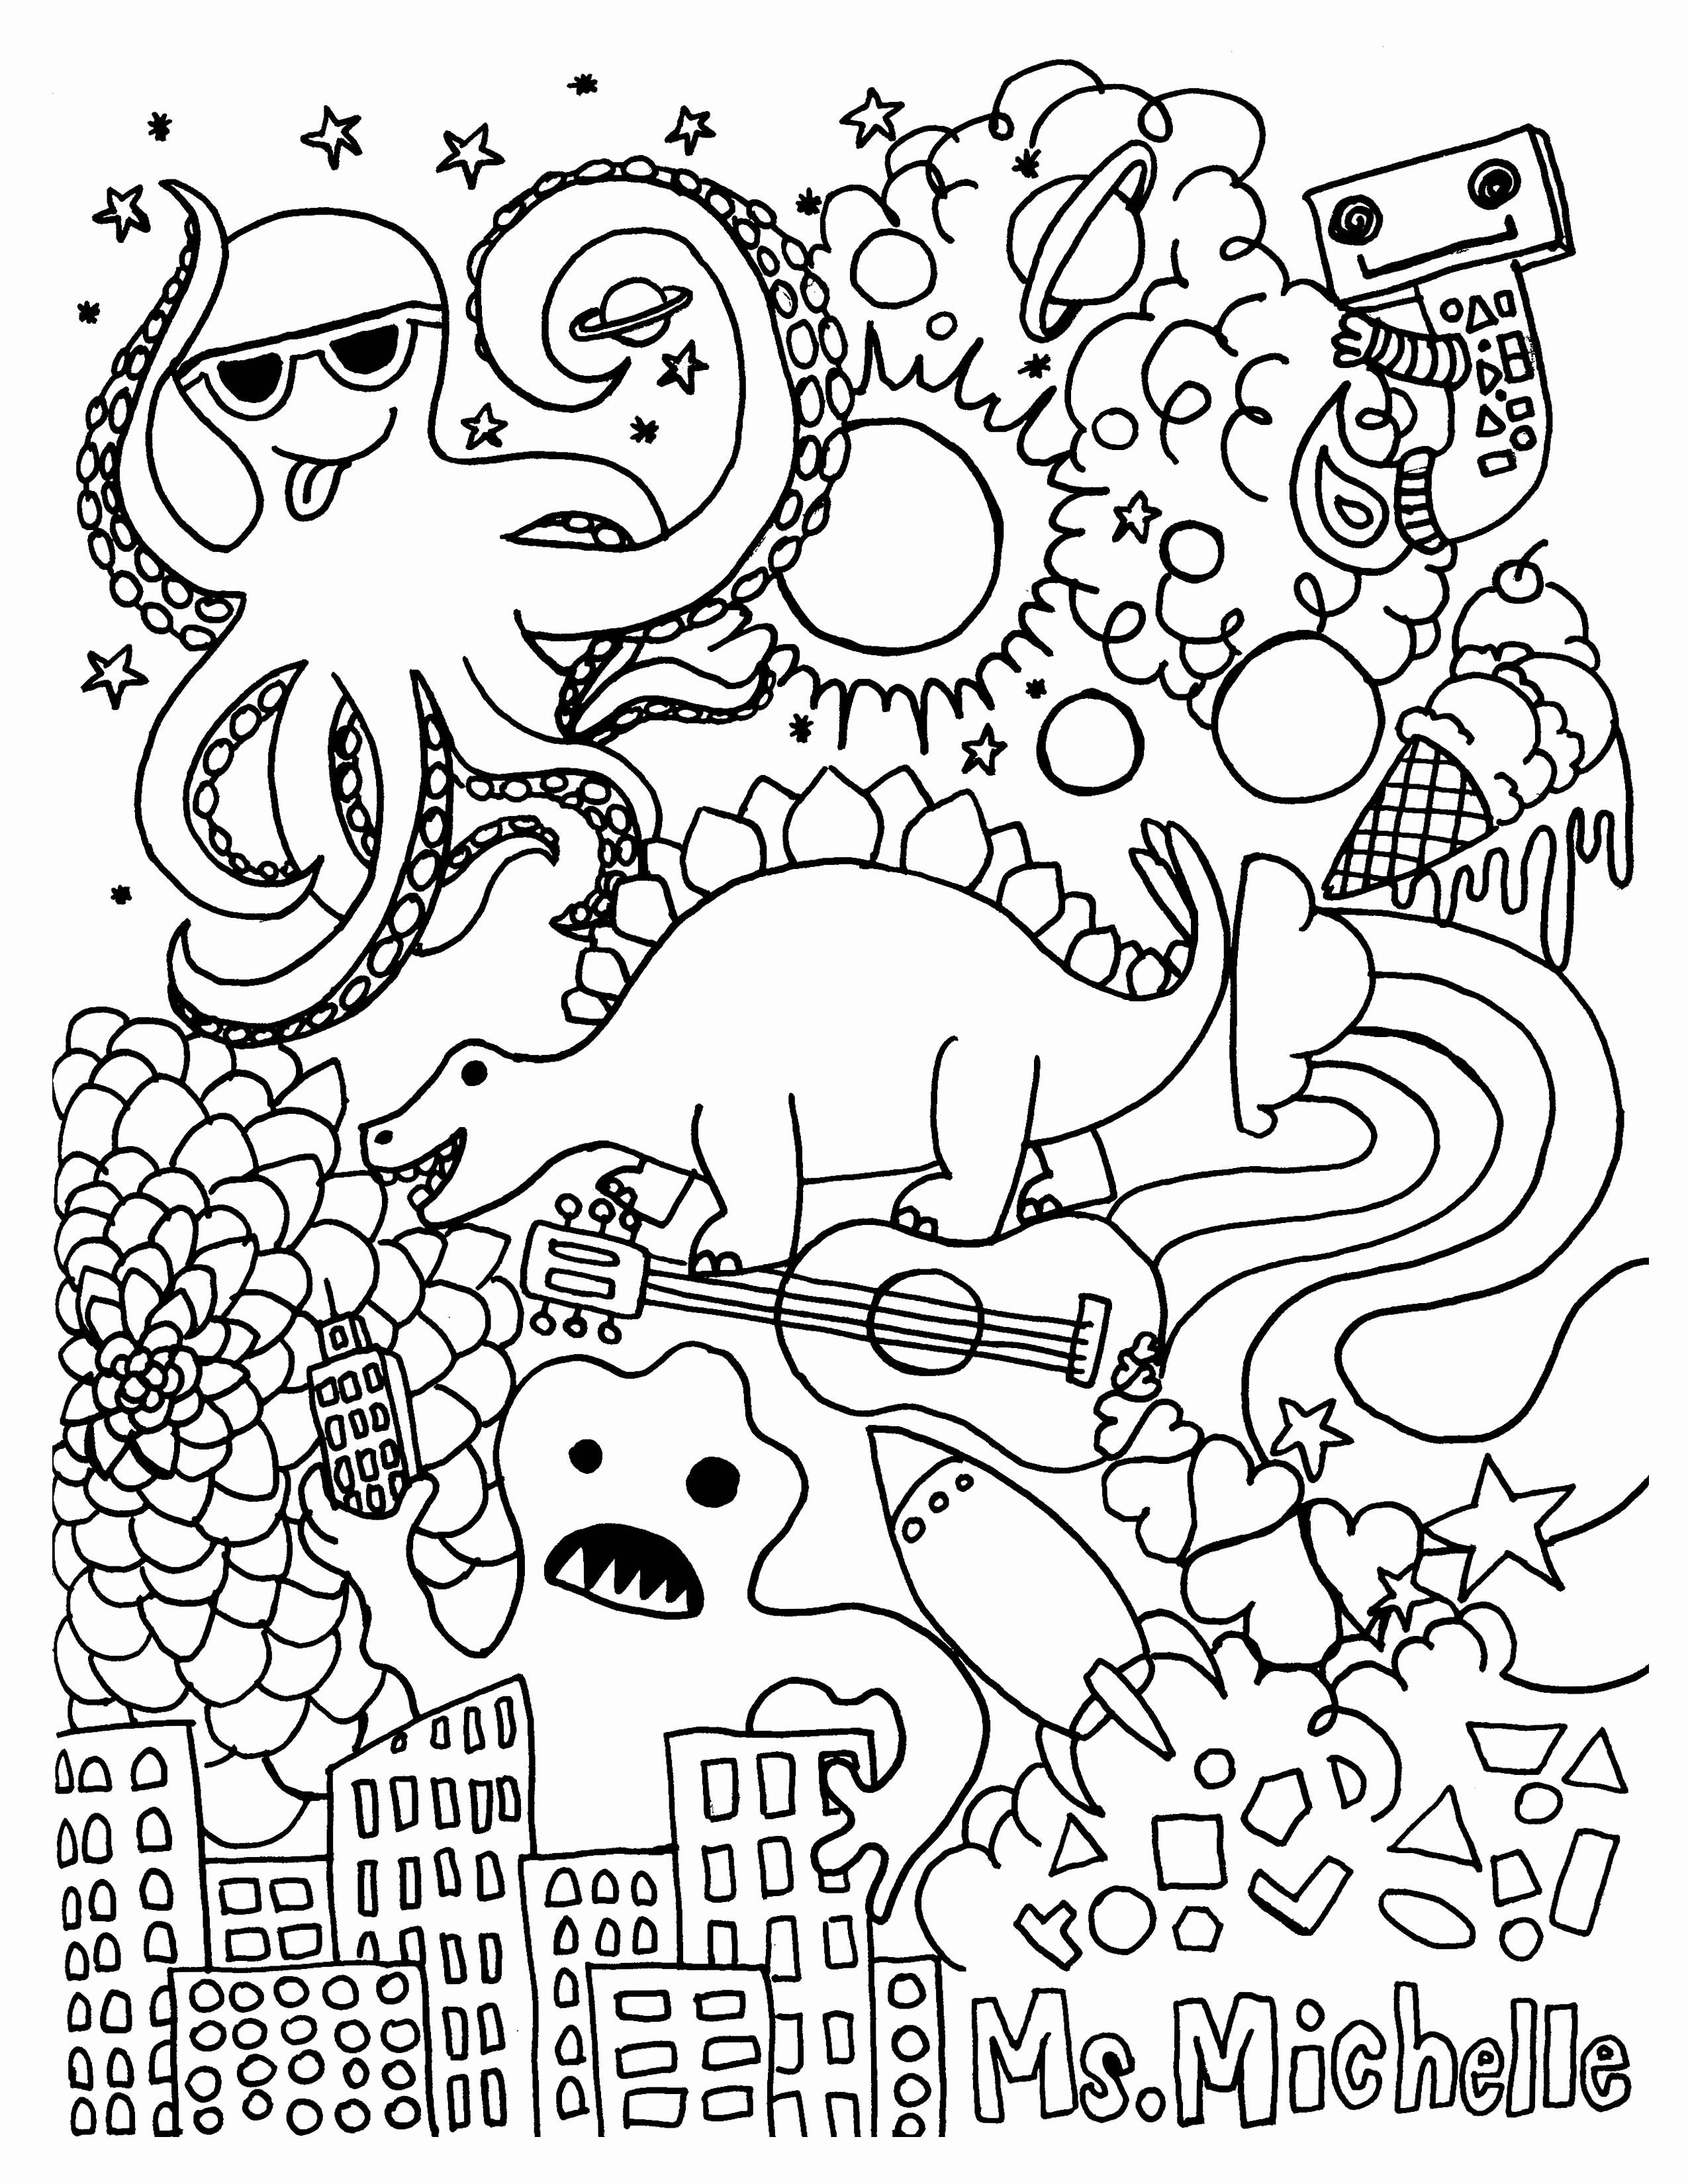 Mini Coloring Pages  Gallery 7i - Free Download